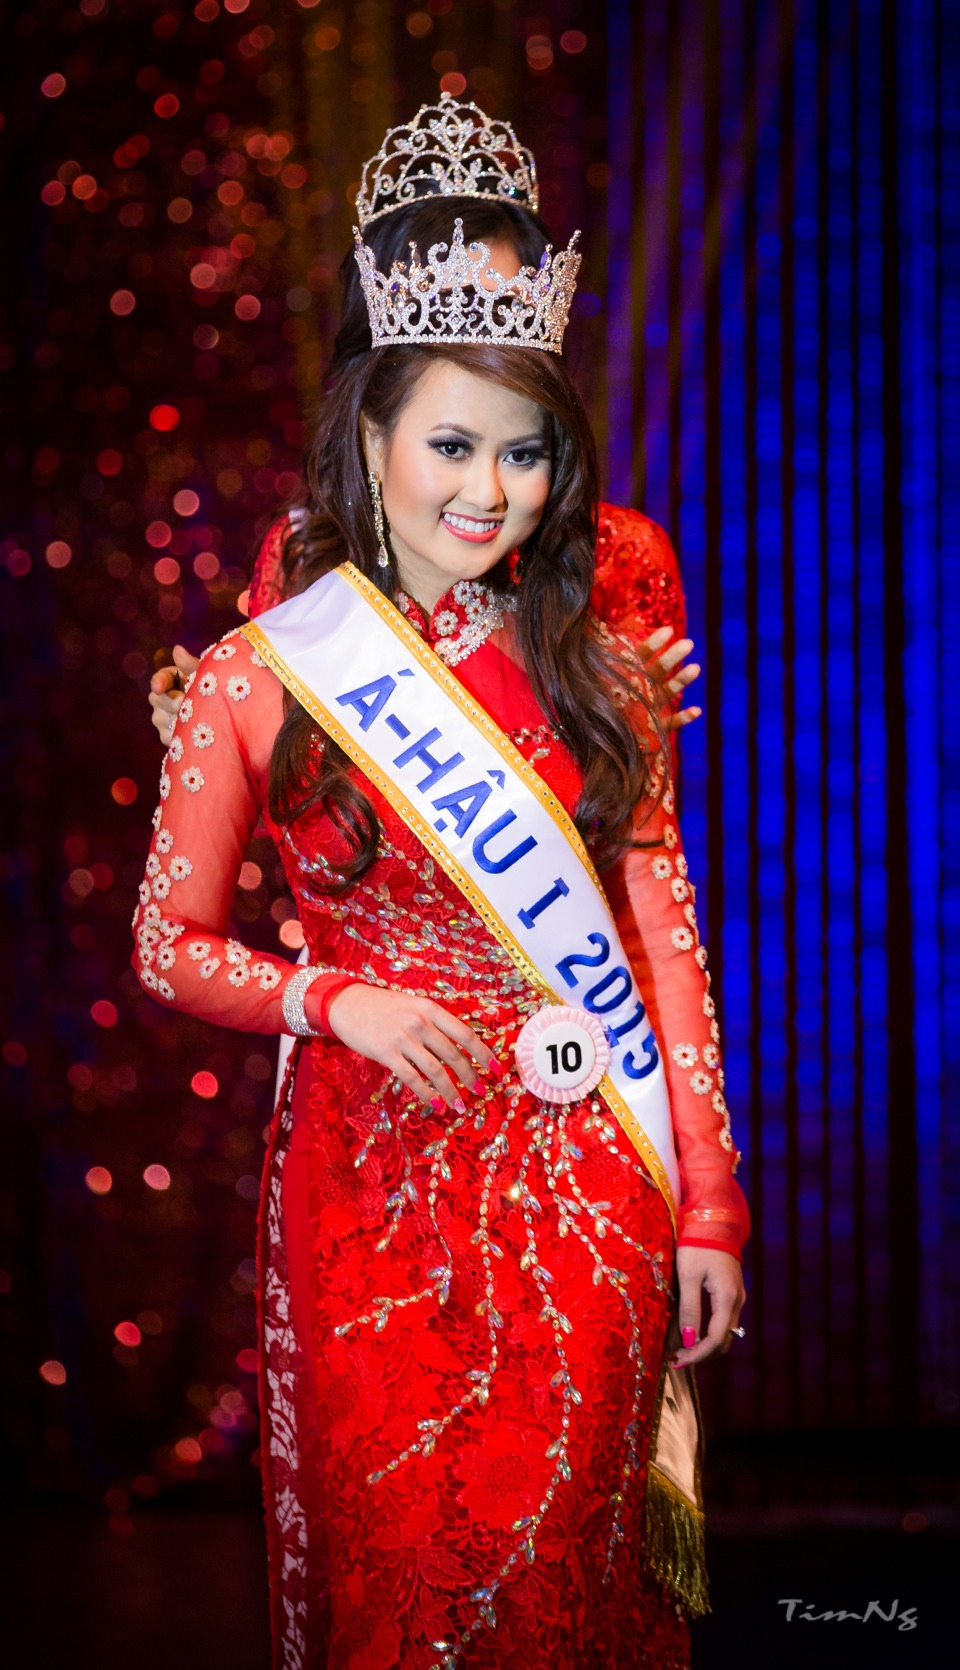 Pageant Day 2015 - Miss Vietnam of Northern CA 2015 - Image 135